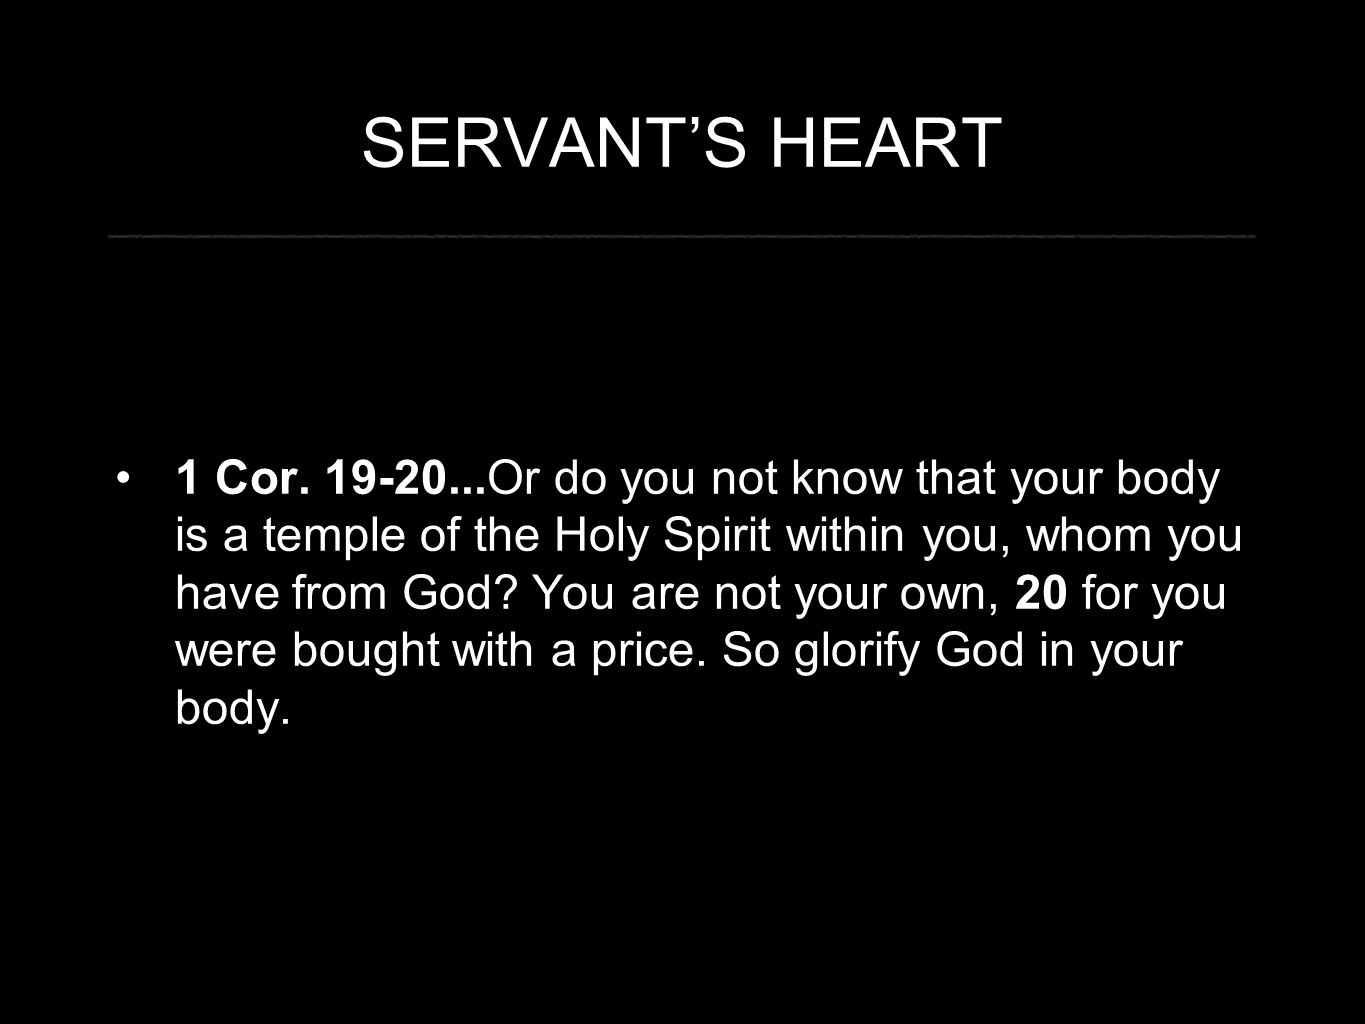 SERVANT'S HEART 1 Cor. 19-20...Or do you not know that your body is a temple of the Holy Spirit within you, whom you have from God? You are not your o